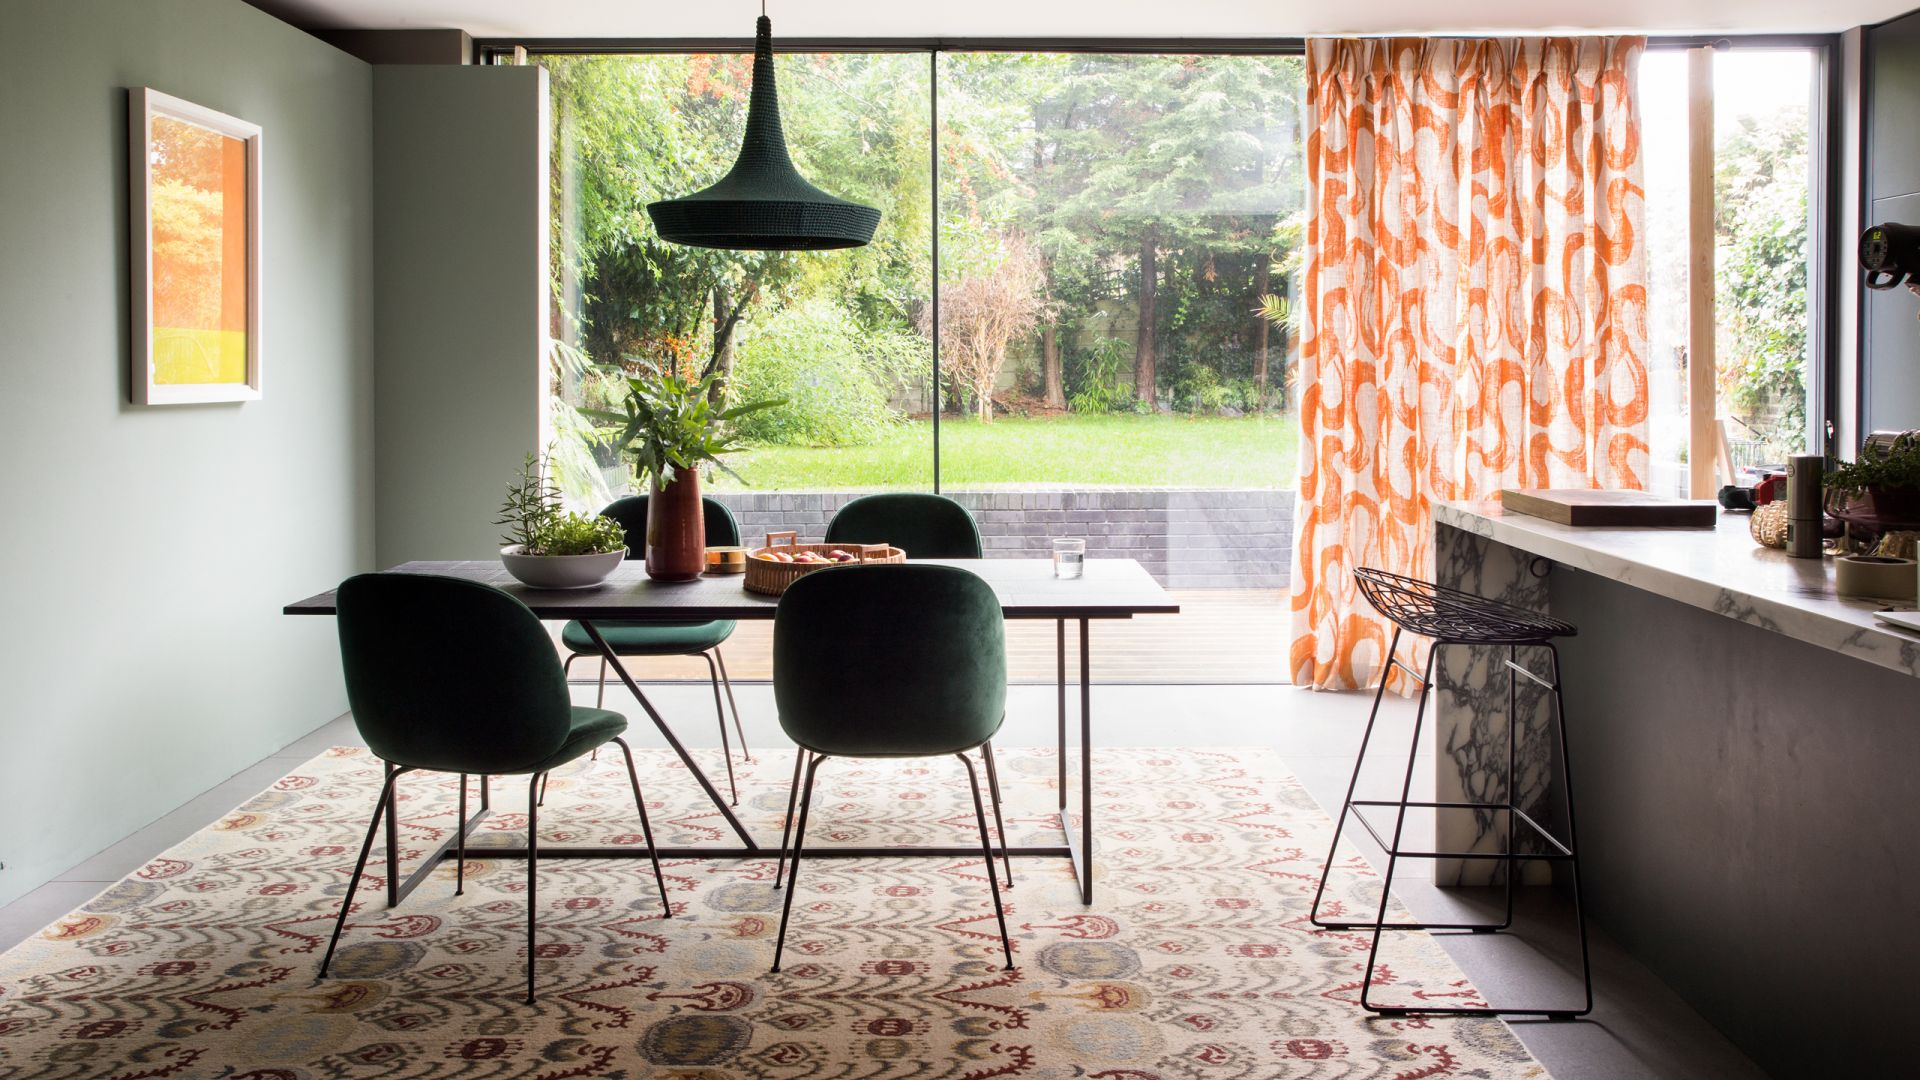 Chic Modern Dining Area With Statement Rug and Curtain